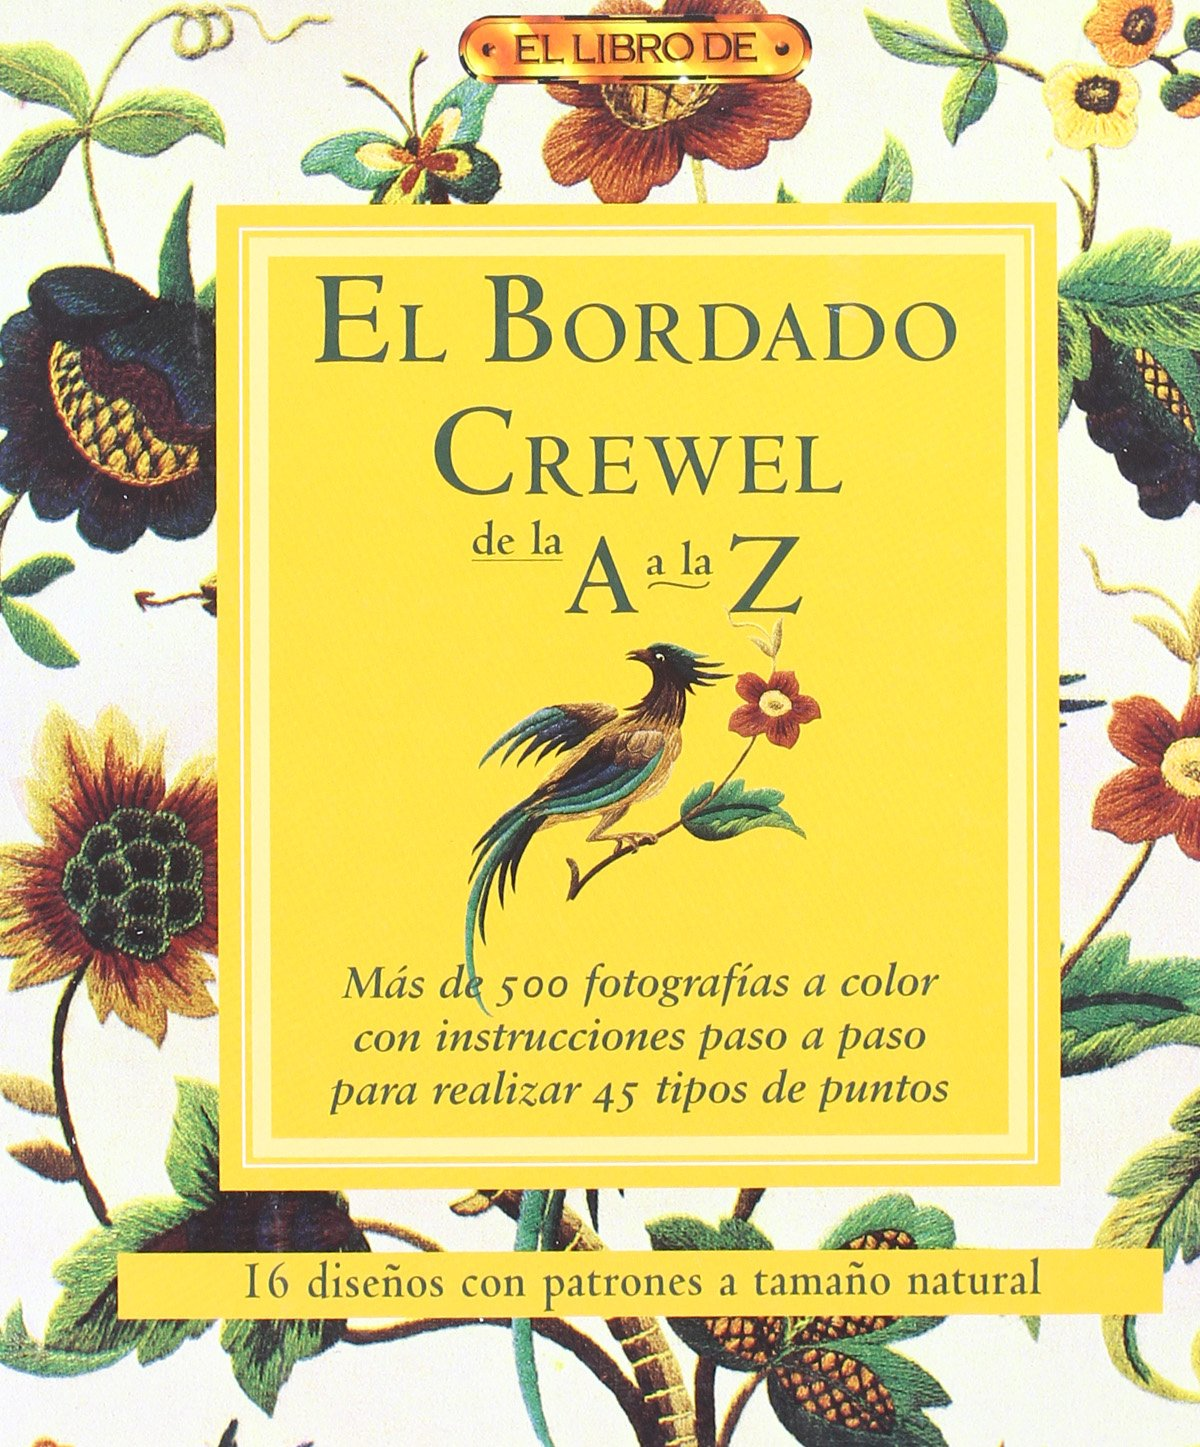 El Bordado Crewel De La a La Z: Unknown: 9788496550810: Amazon.com: Books